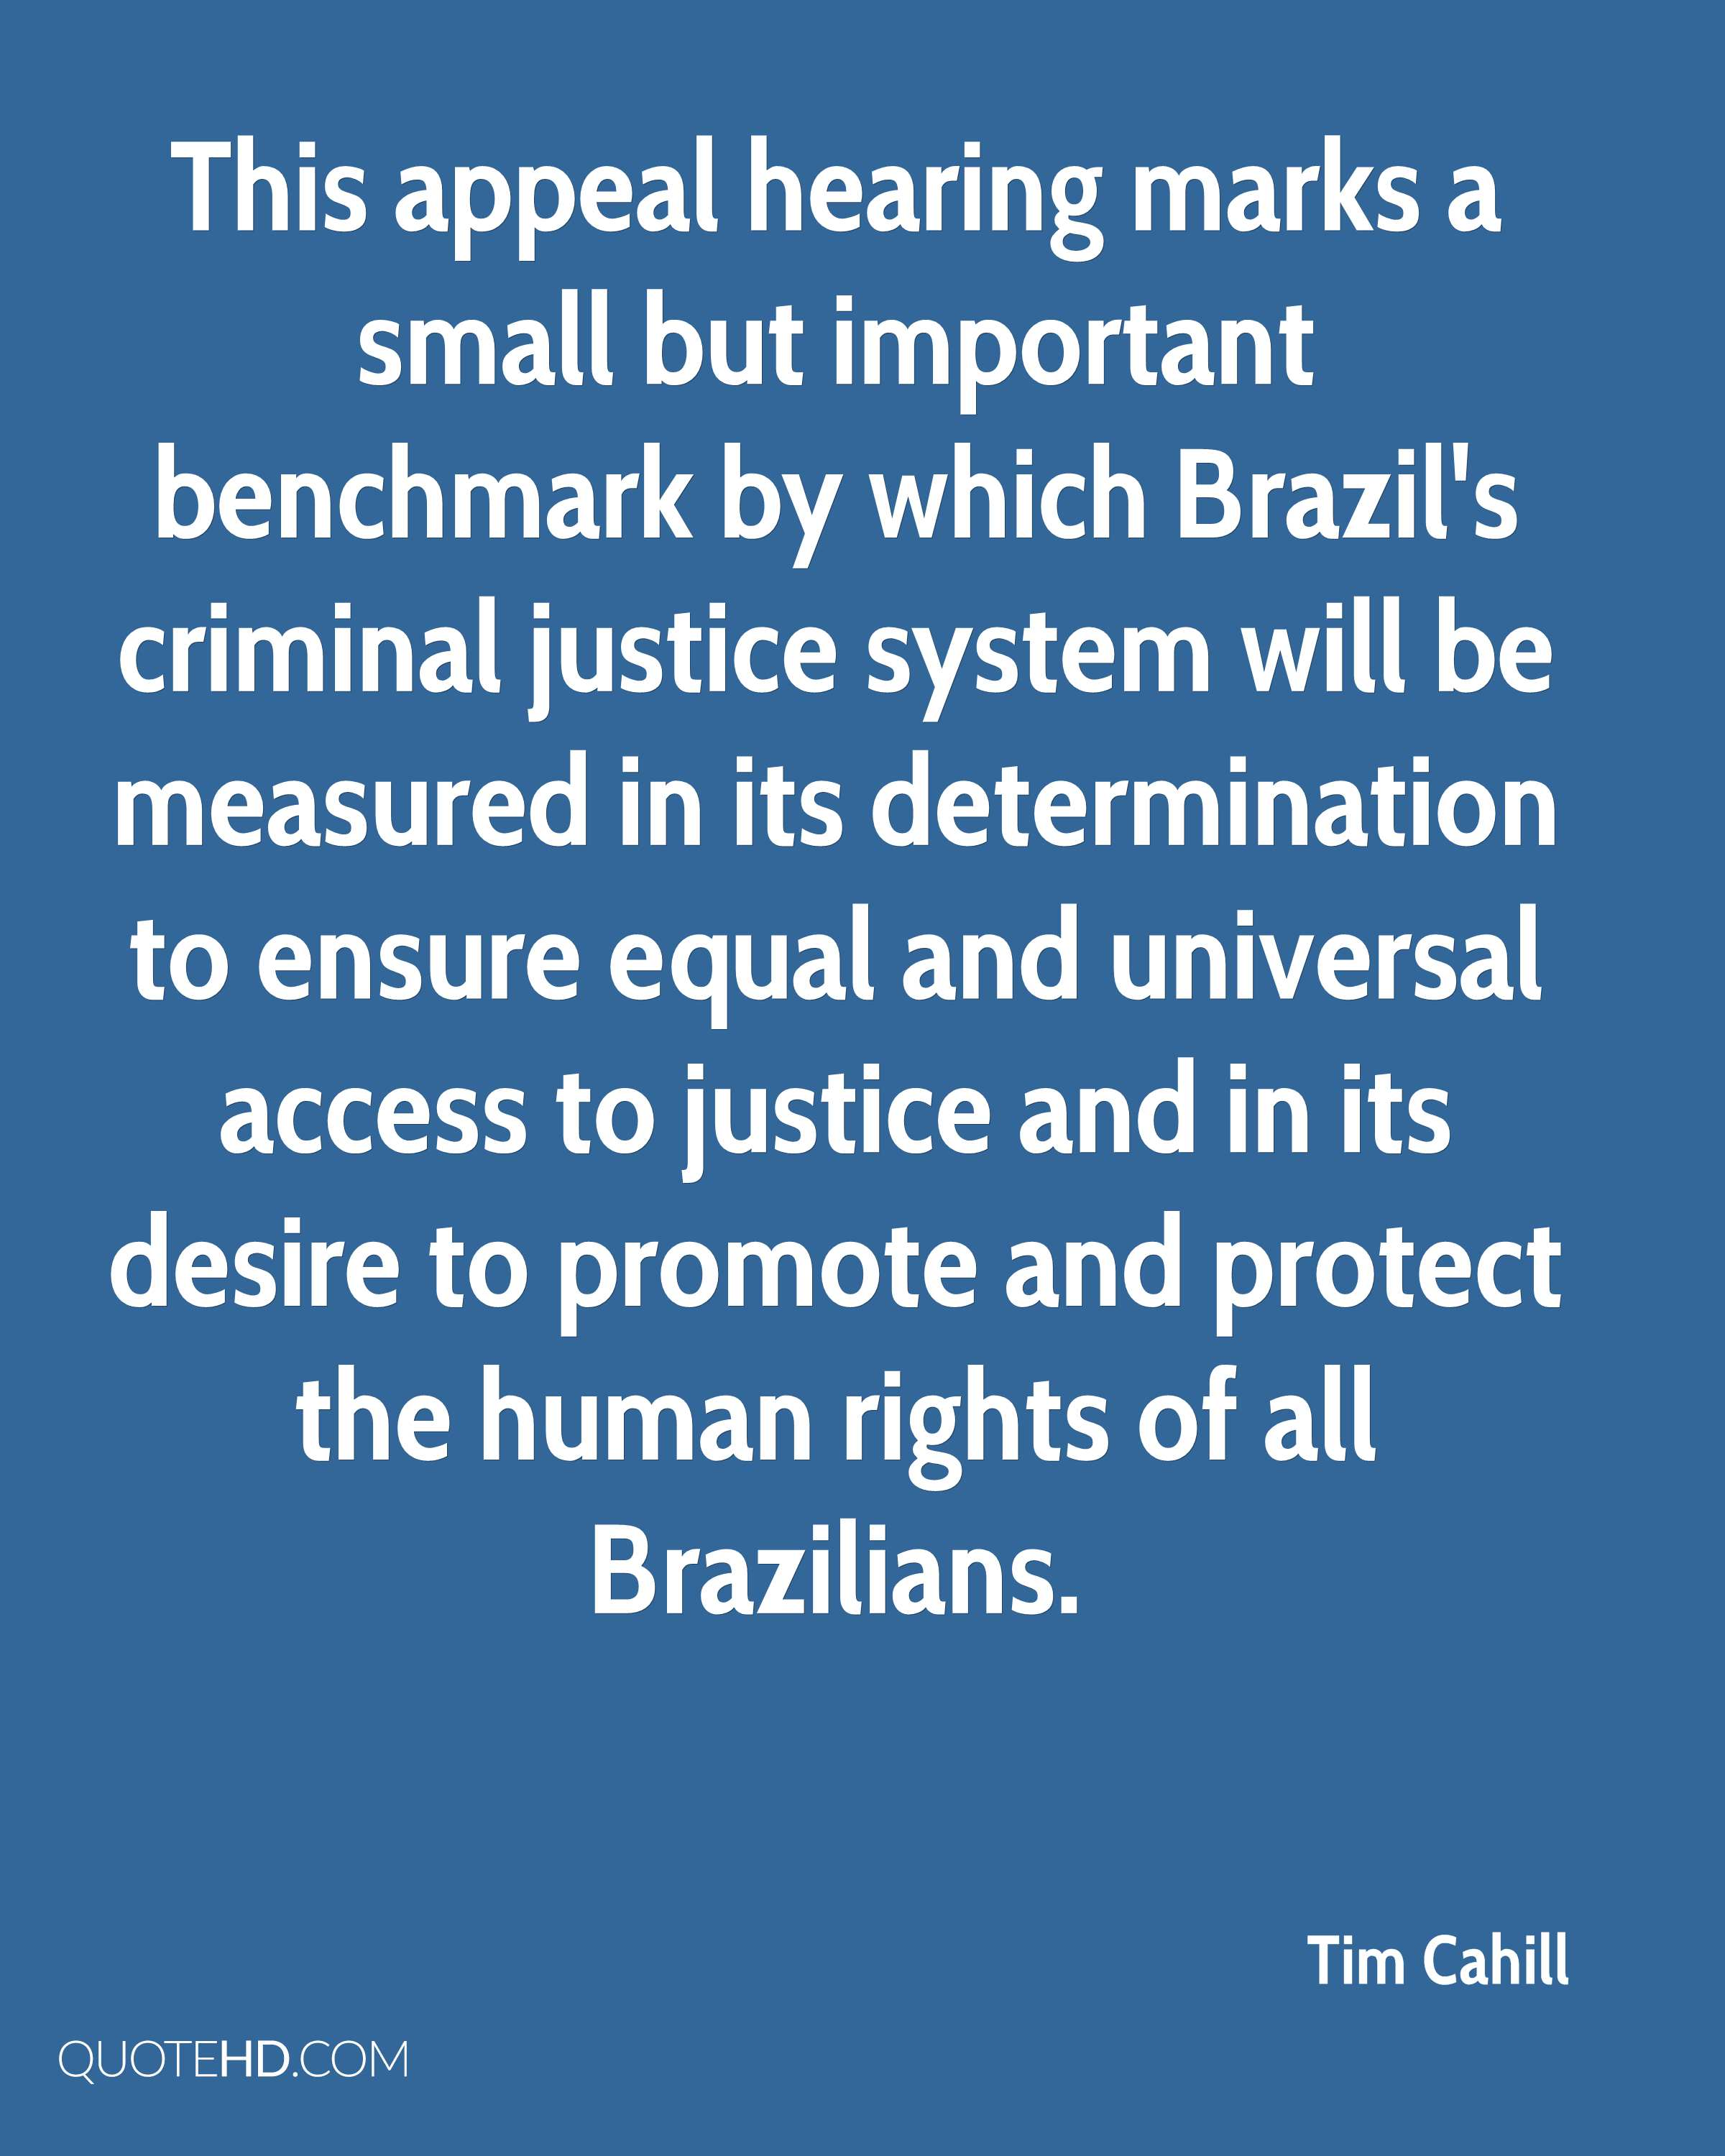 This appeal hearing marks a small but important benchmark by which Brazil's criminal justice system will be measured in its determination to ensure equal and universal access to justice and in its desire to promote and protect the human rights of all Brazilians.